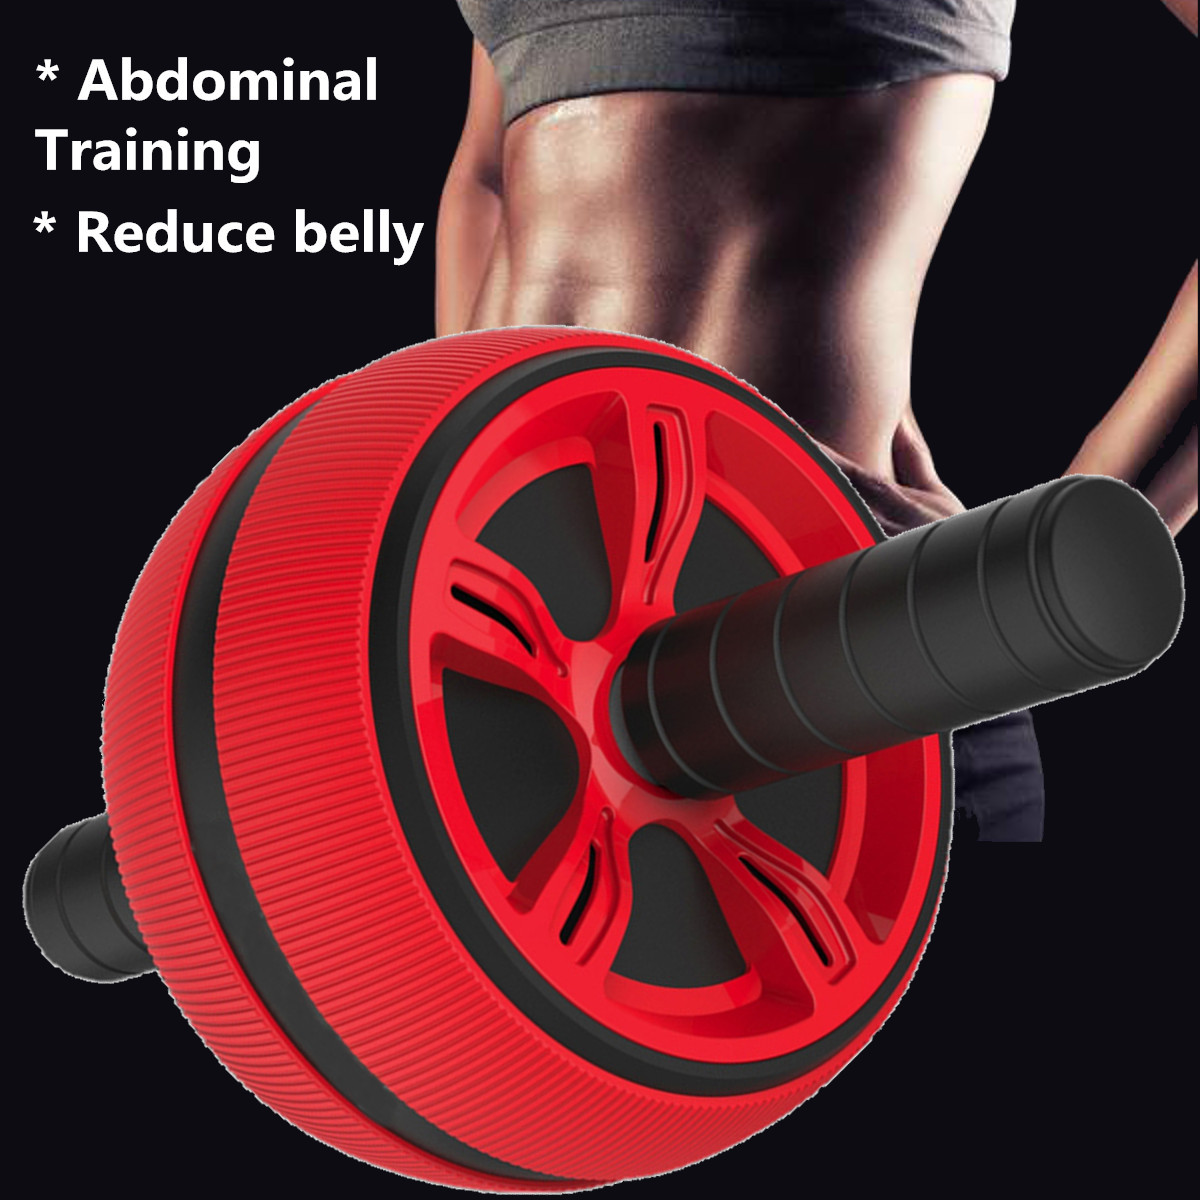 Abs Roller with Strong Bearing Capacity Ideal for burning Extra Calories from Arms Back and Belly 3